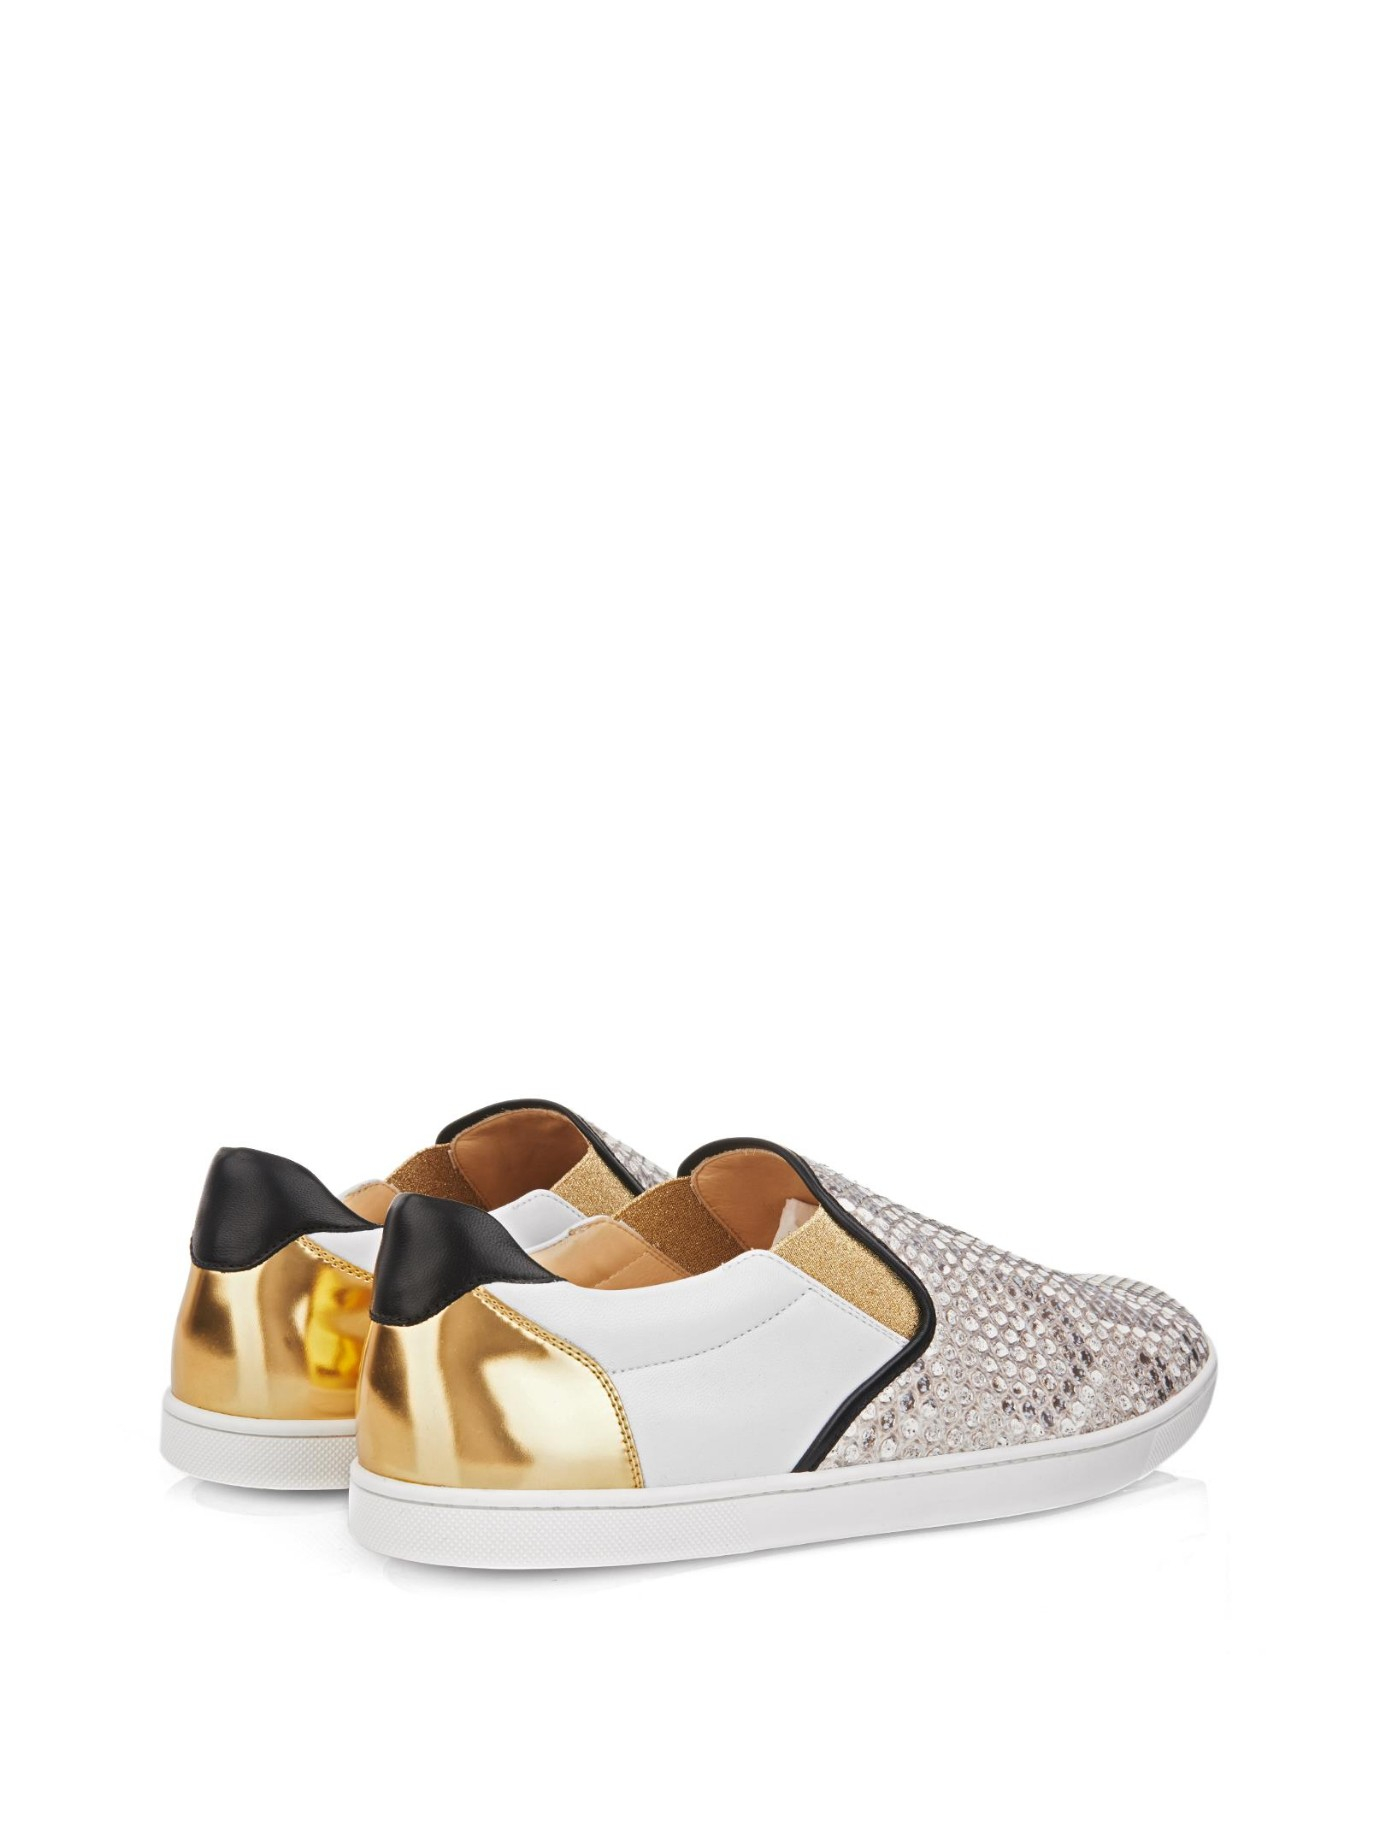 Christian louboutin Sailor Python And Leather Skate Shoes in Gold ...